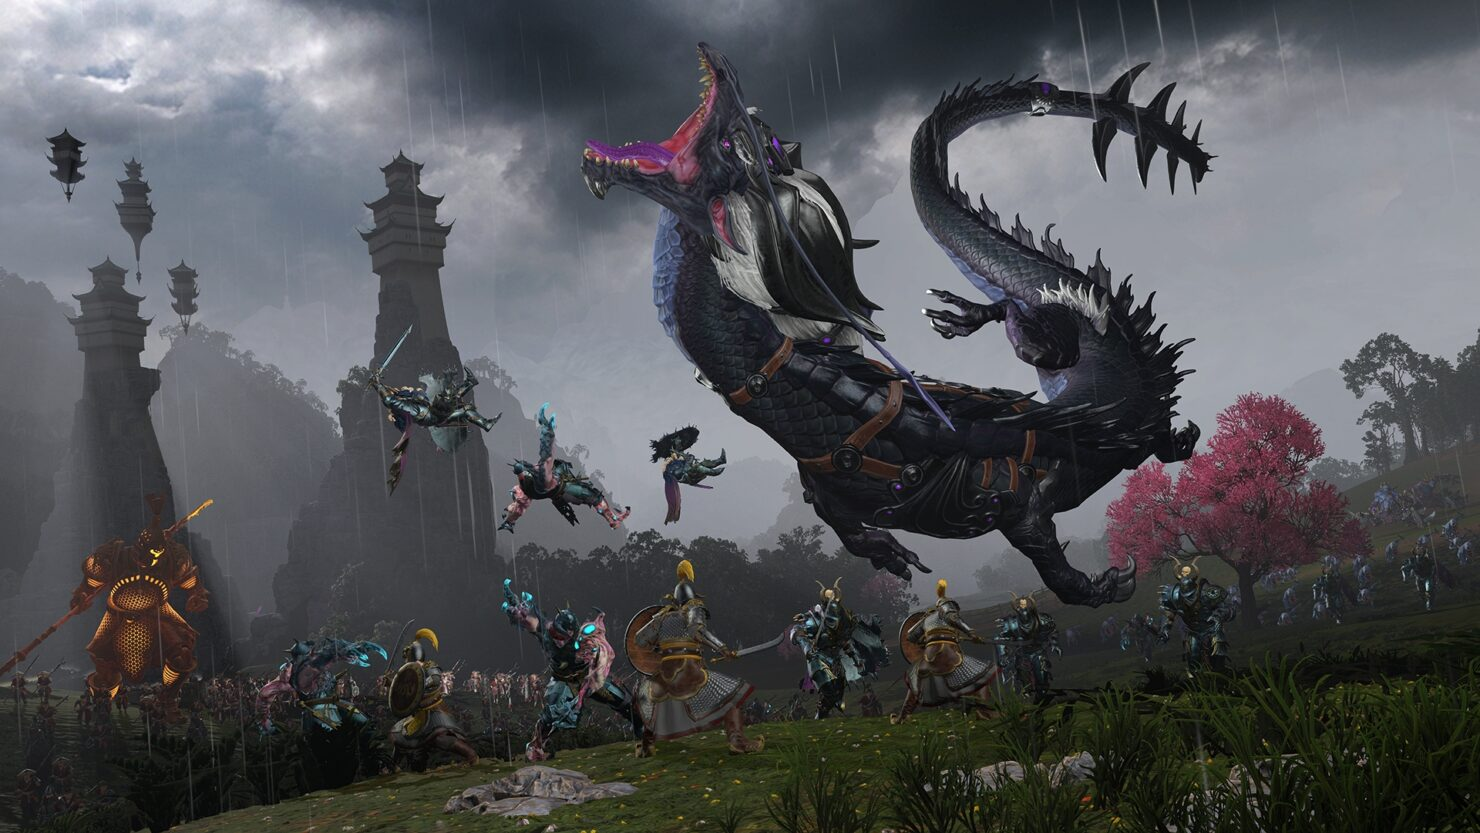 total-war-warhammer-iii-the-grand-cathay-reveal-03-dragon-1